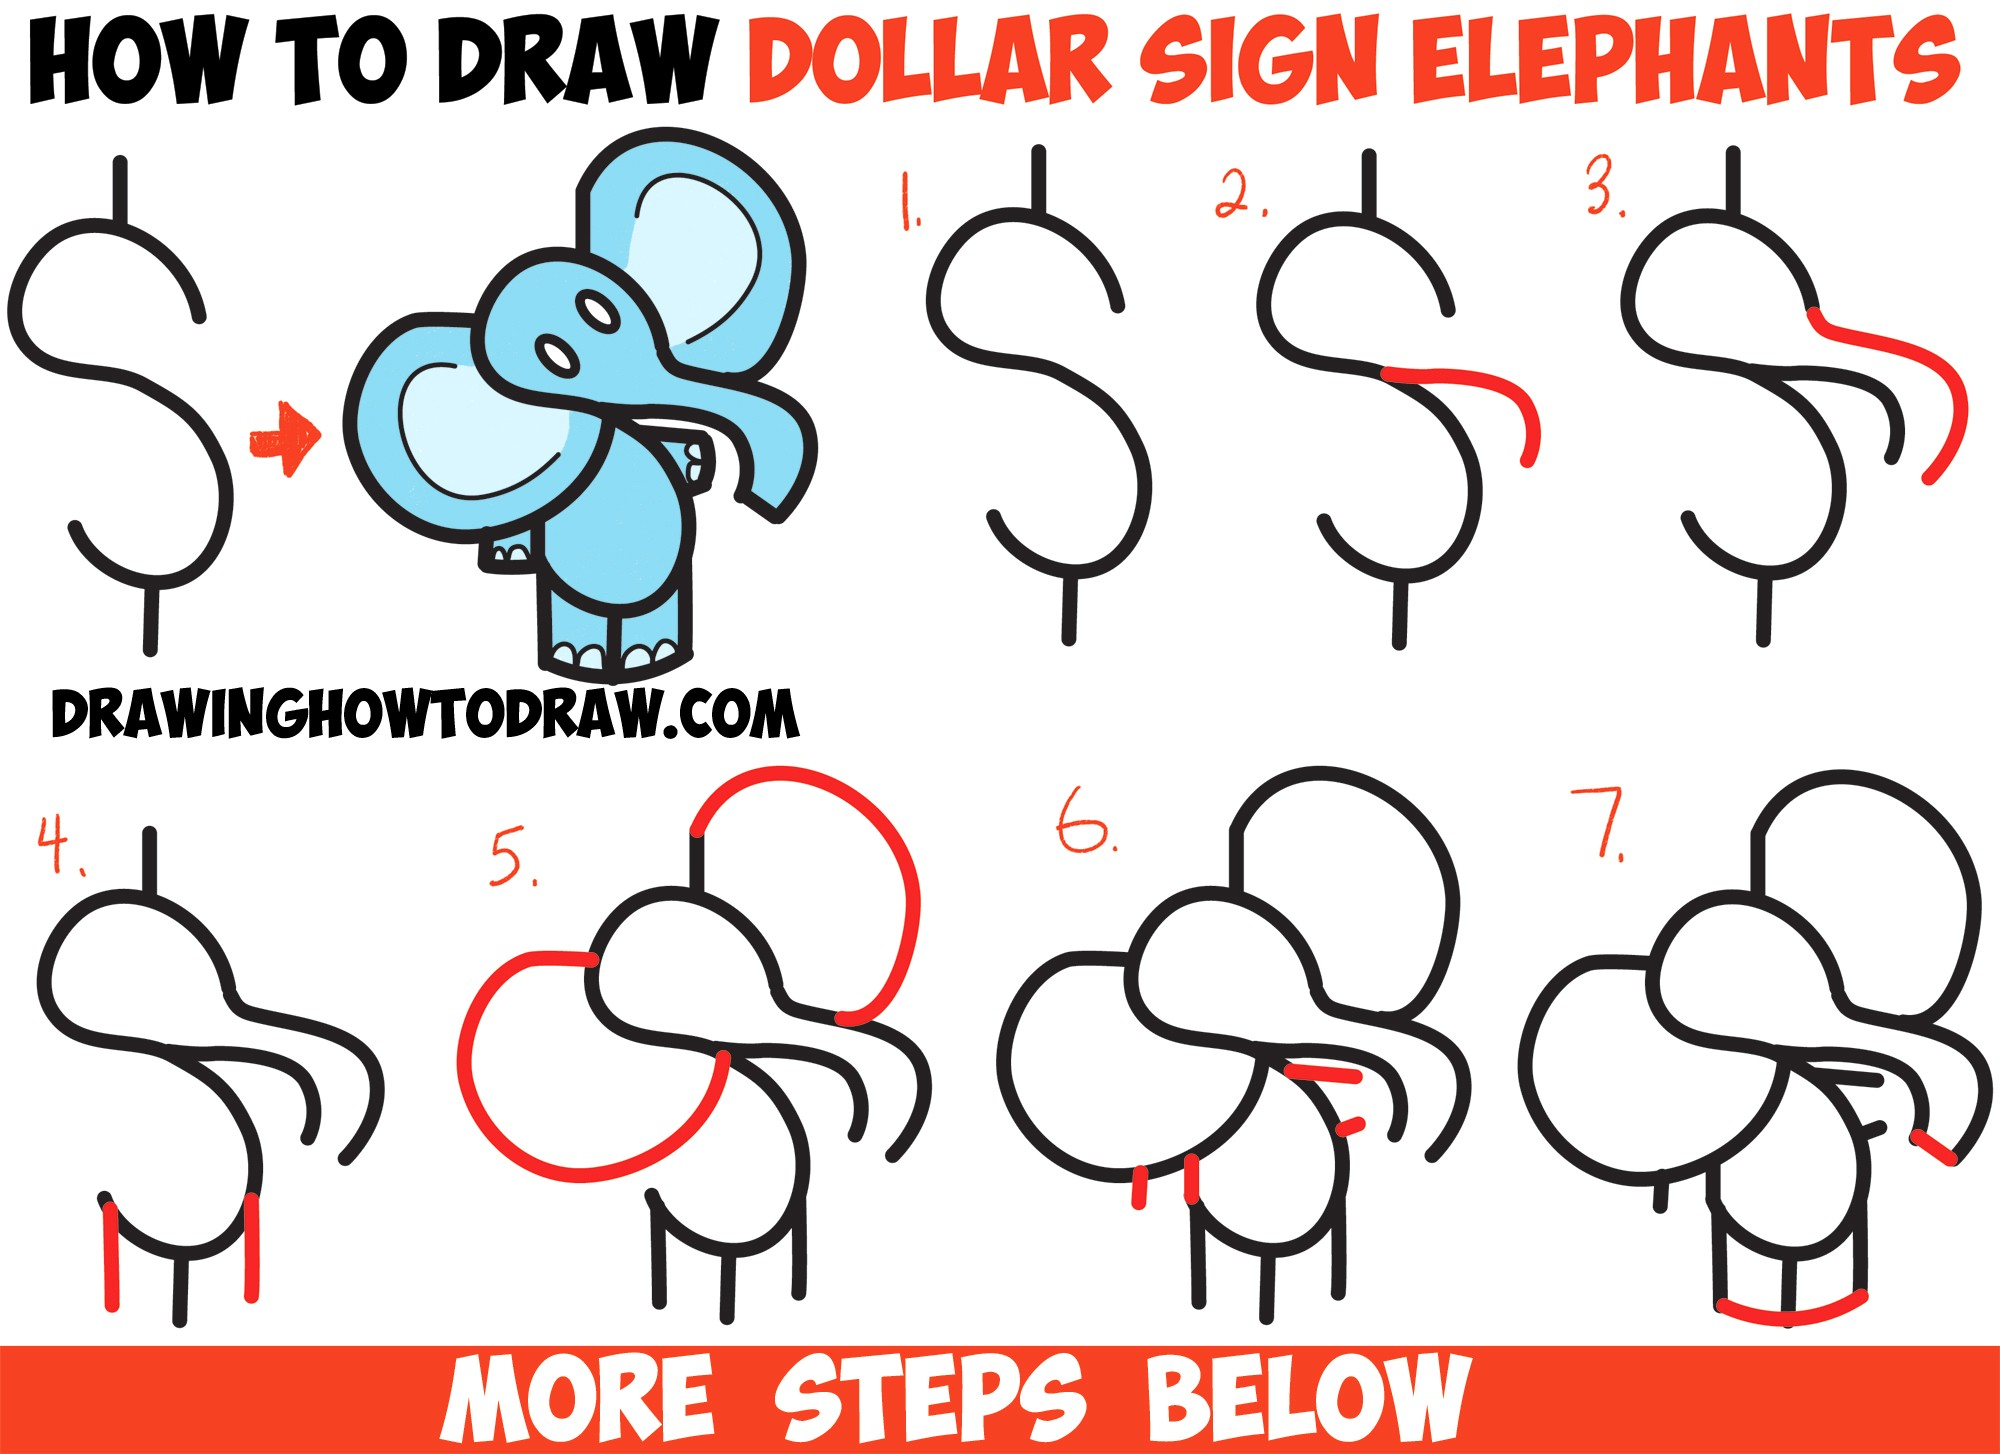 2000x1454 How To Draw Cartoon Elephants From Dollar Sign Easy Step